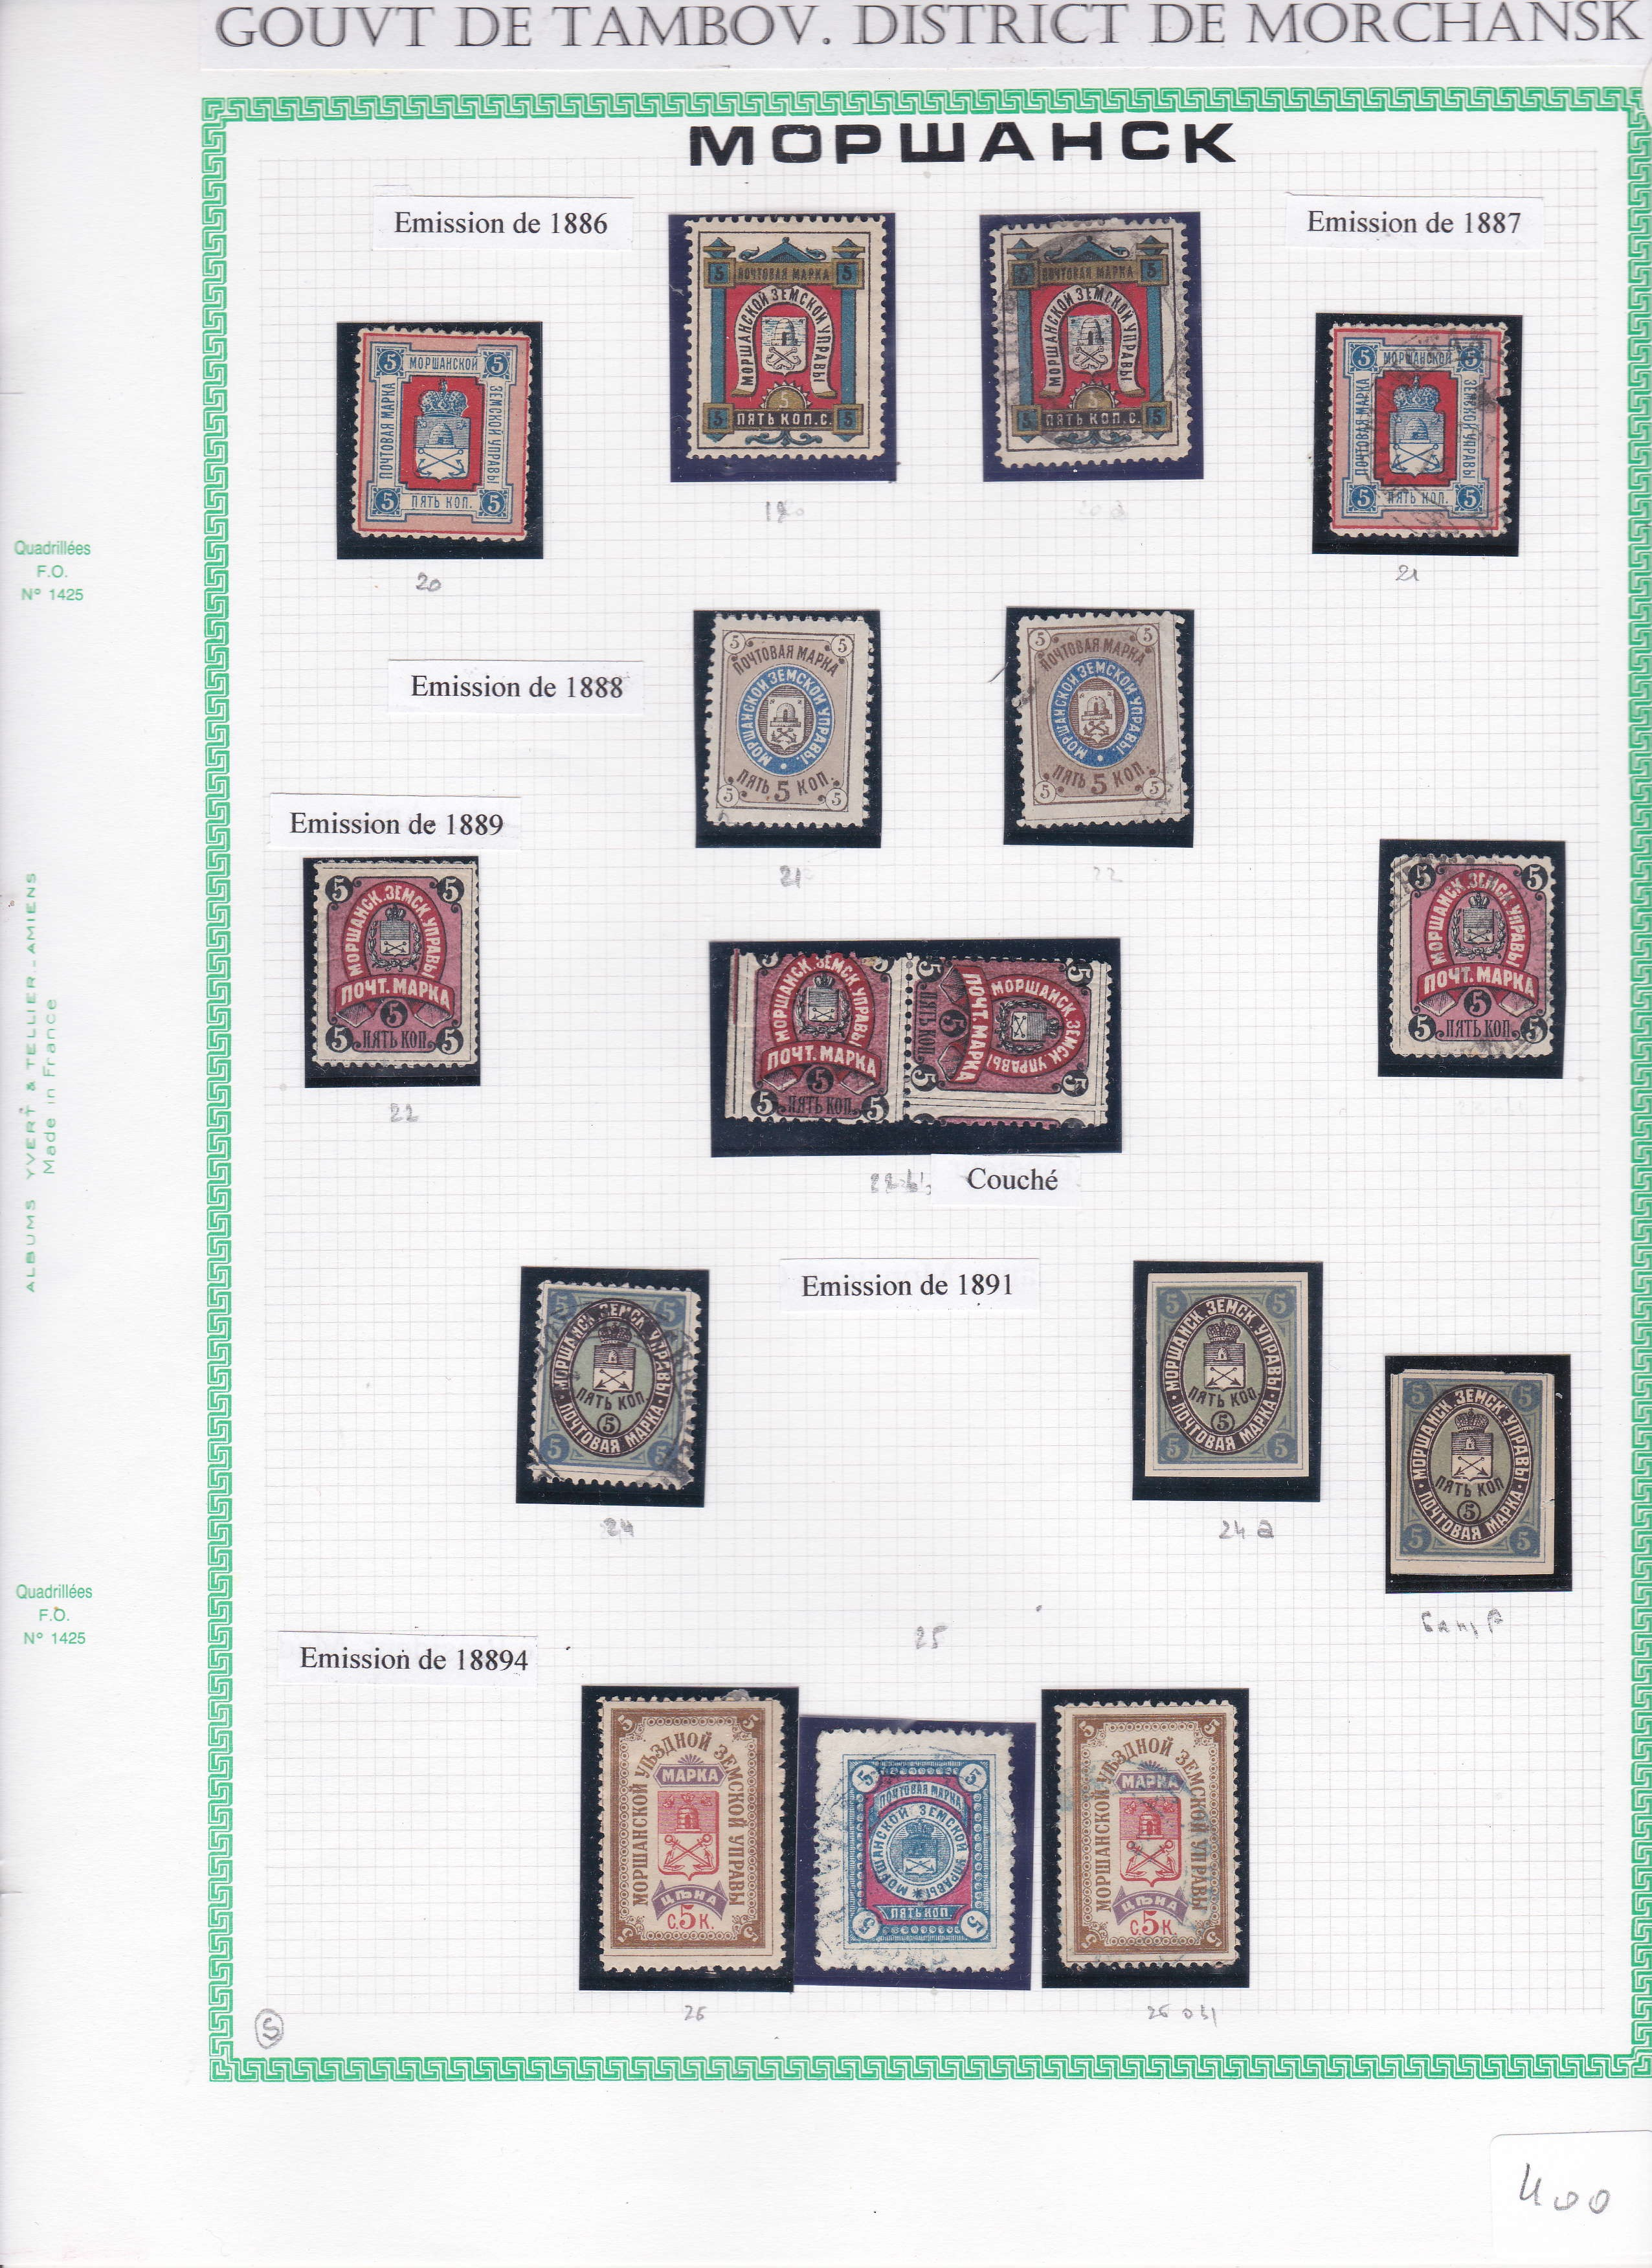 Lot 496 - Eastern Europe » RUSSIA - ZEMSTVOS » Morshansk (Tambov Government)  -  Le Timbre Classique SA SALE ON OFFERS N ° 37 PARIS